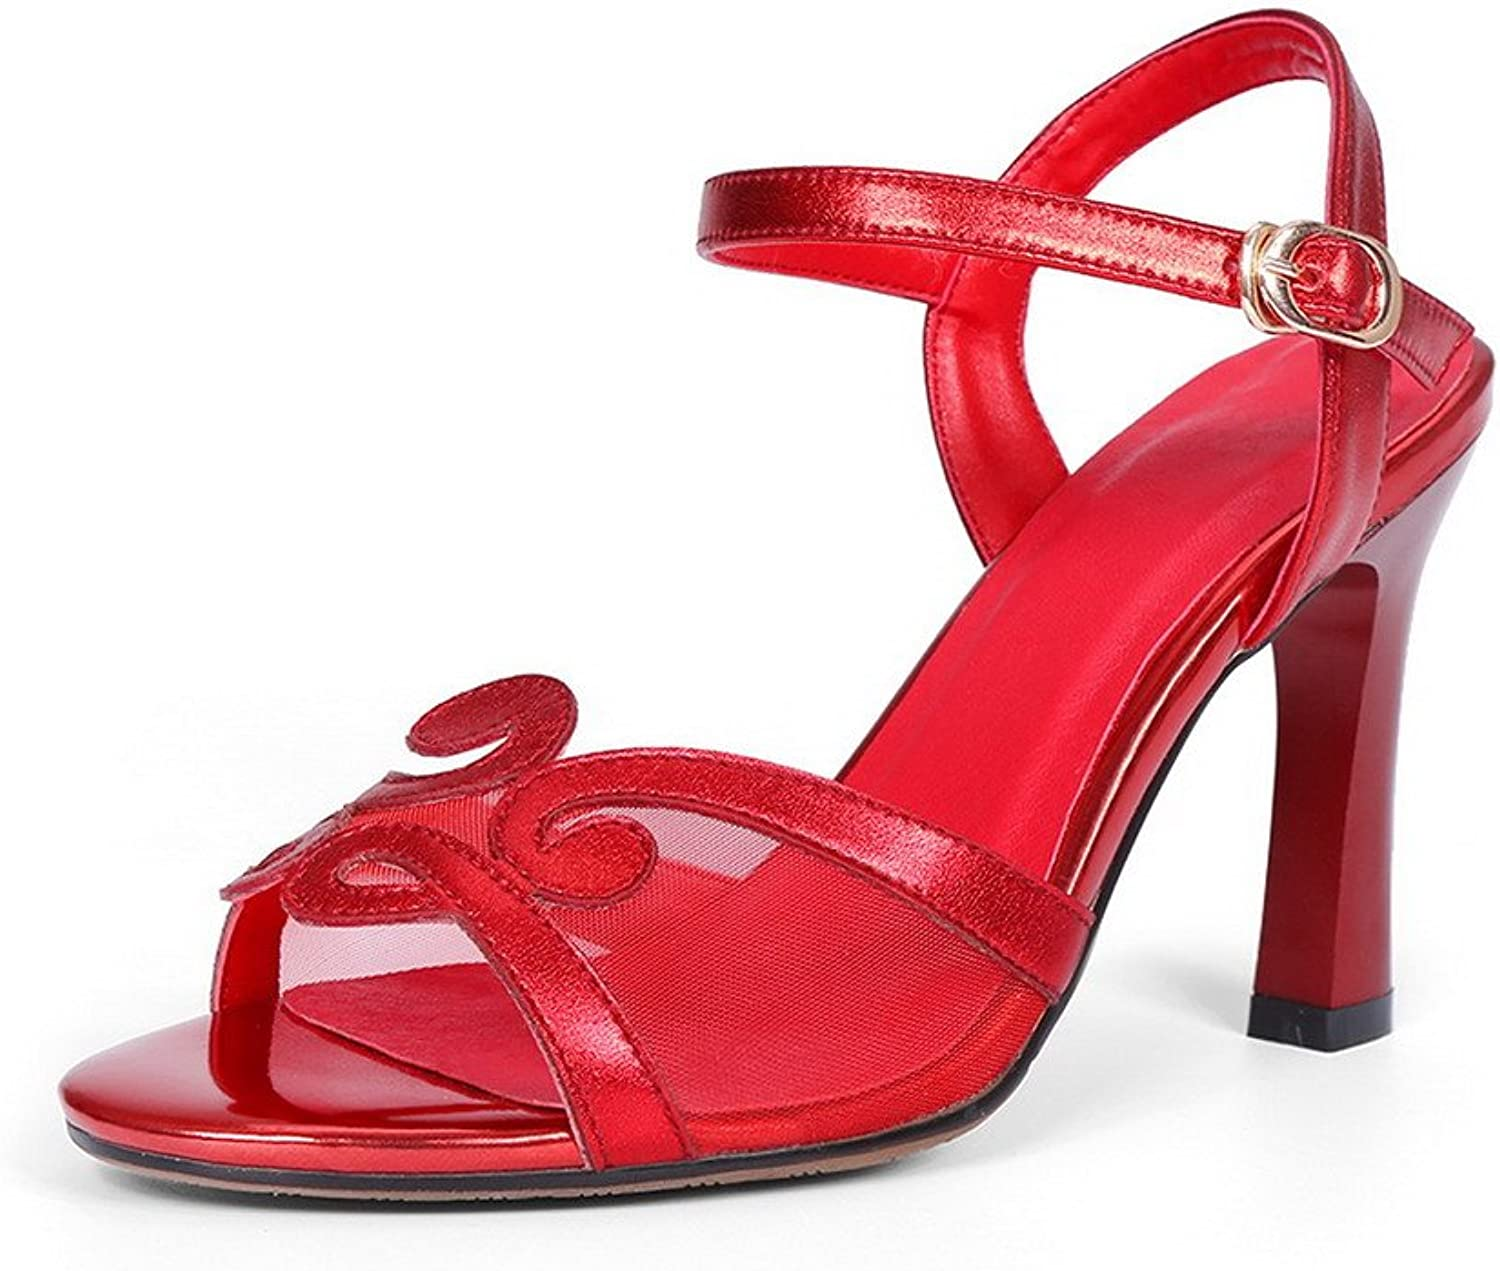 AllhqFashion Women's Solid Cow Leather High-Heels Peep Toe Buckle Sandals